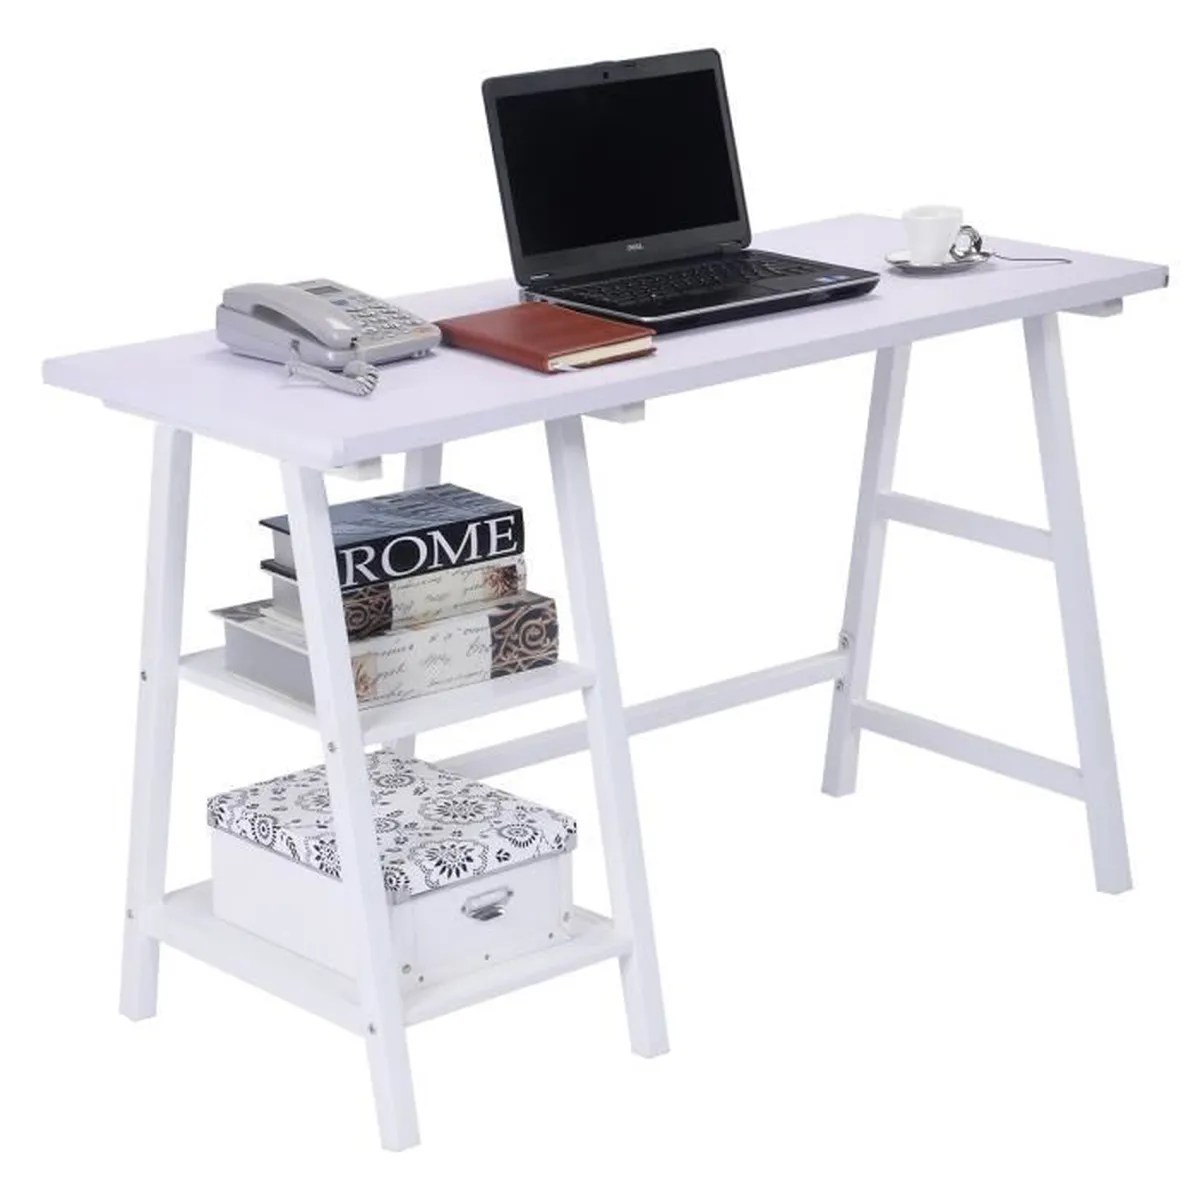 Bureau Zito Bureau Informatique Table De Bureau Pour Ordinateur Office